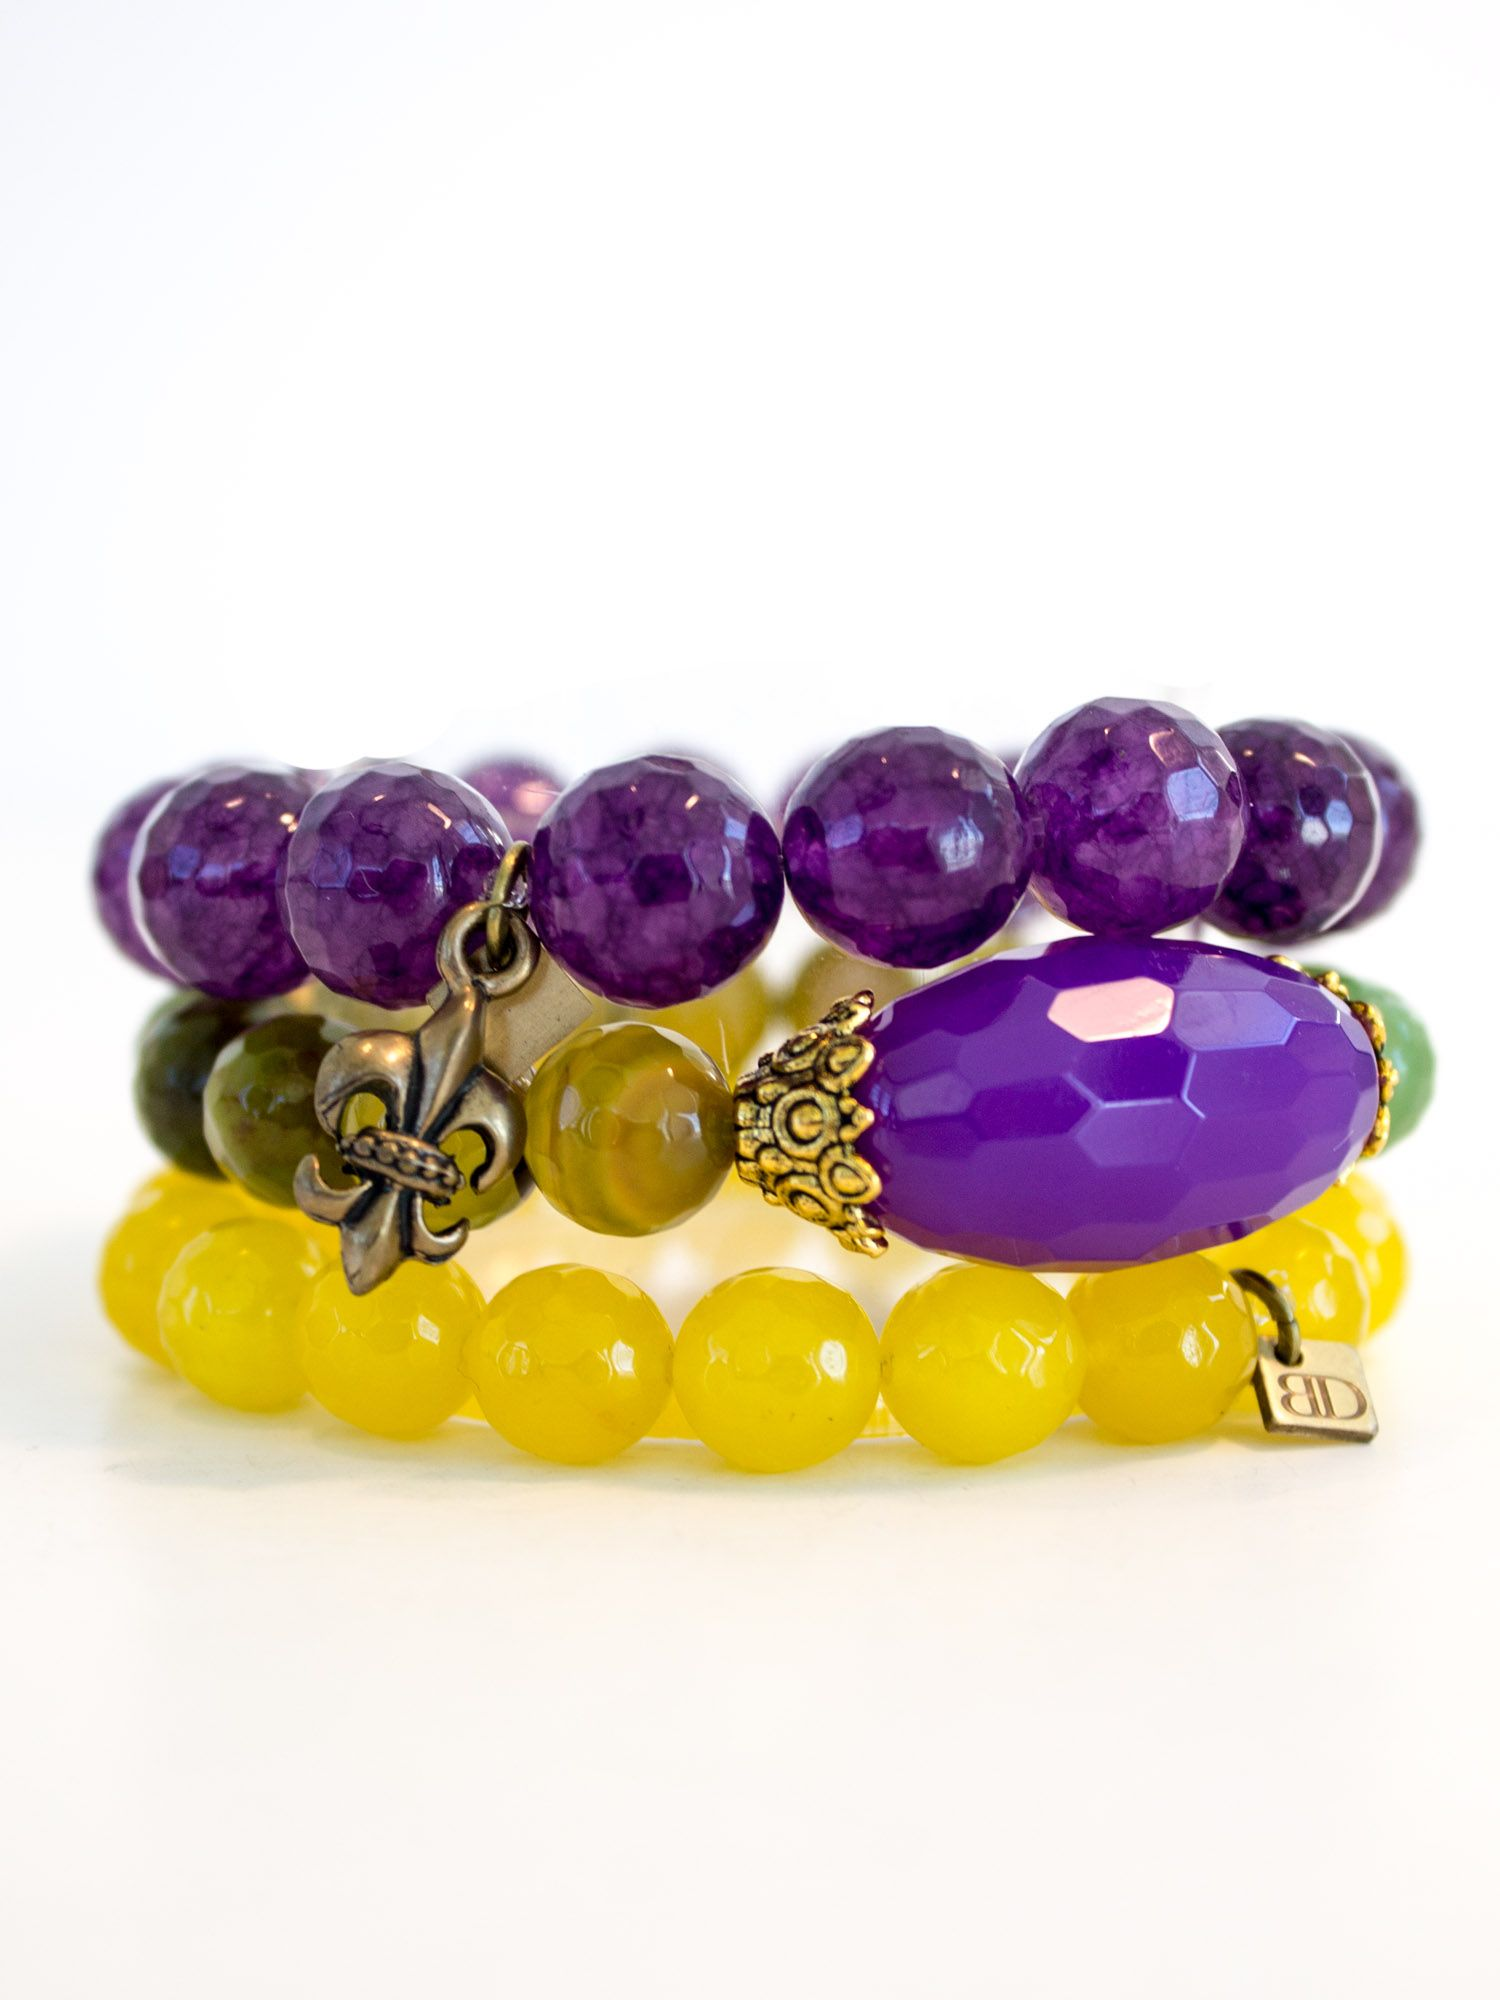 green, gold and purple - the best mardi gras party combo and bead you won't throw away!